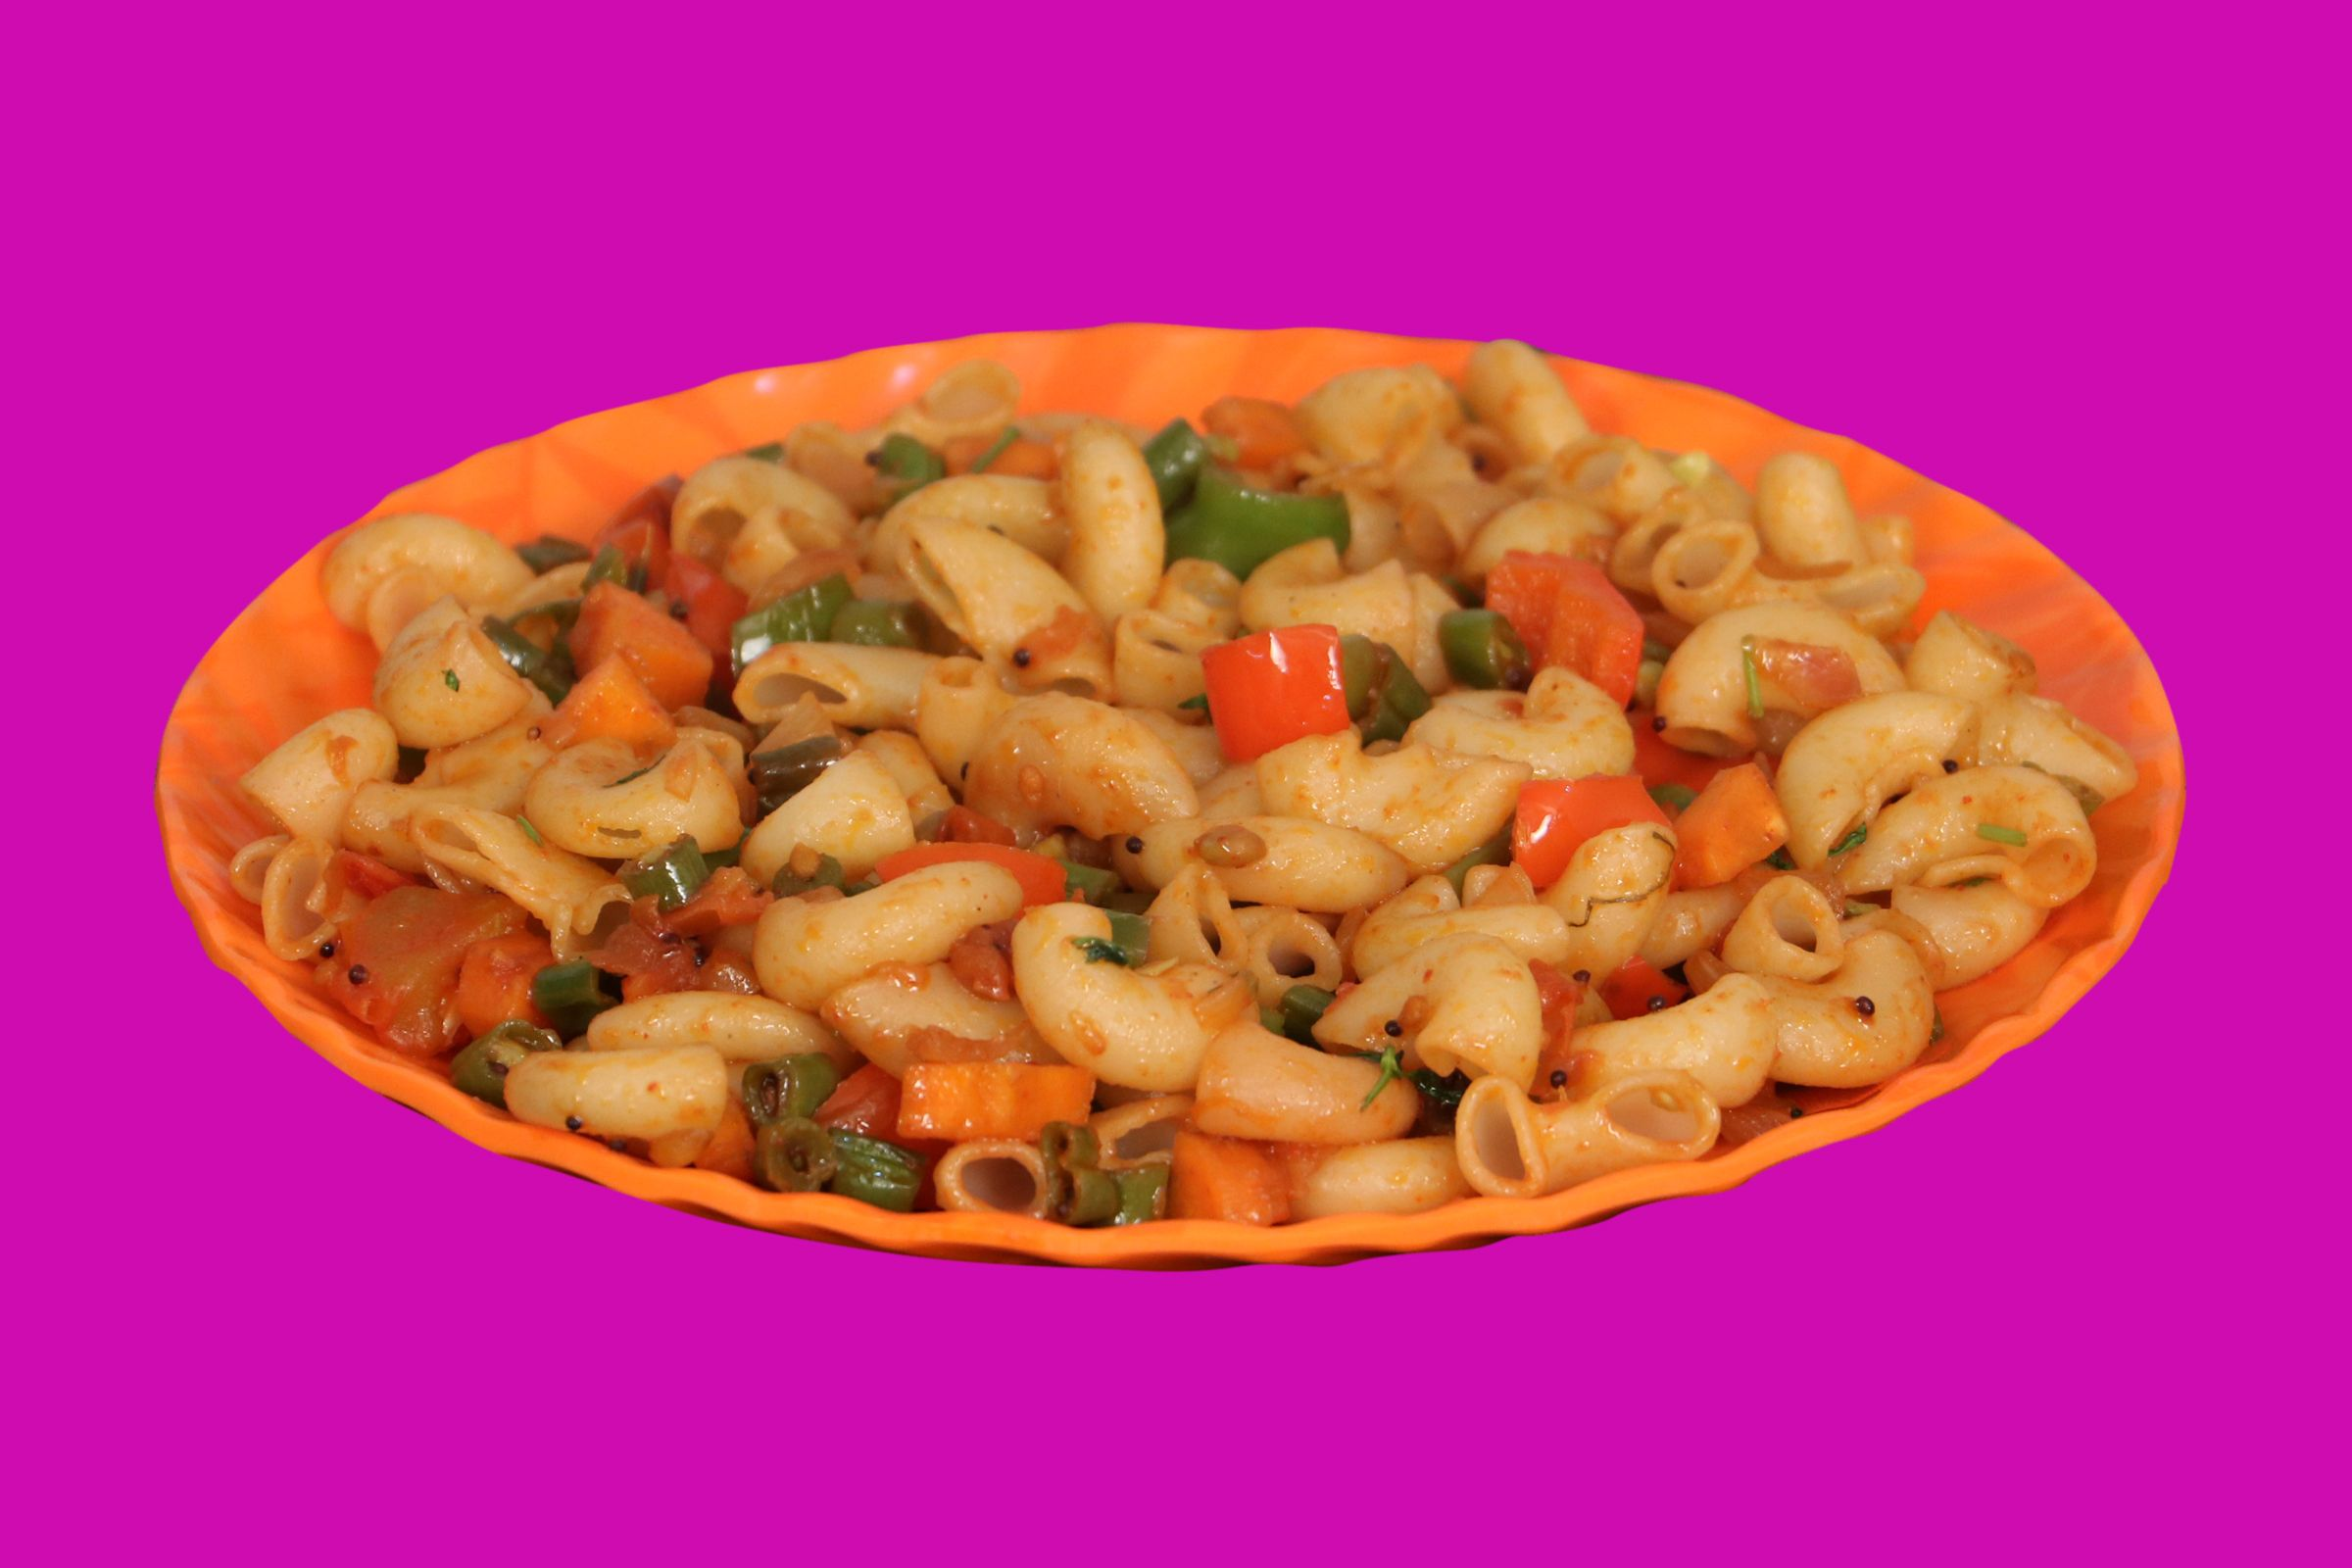 Veg indian macaroni recipe in hindi macaroni for kids theyre how to make veg indian style macaroni pasta recipe hindi step by step at home urdugetable macaroni pasta is perfect dish for kids lunchbox forumfinder Images